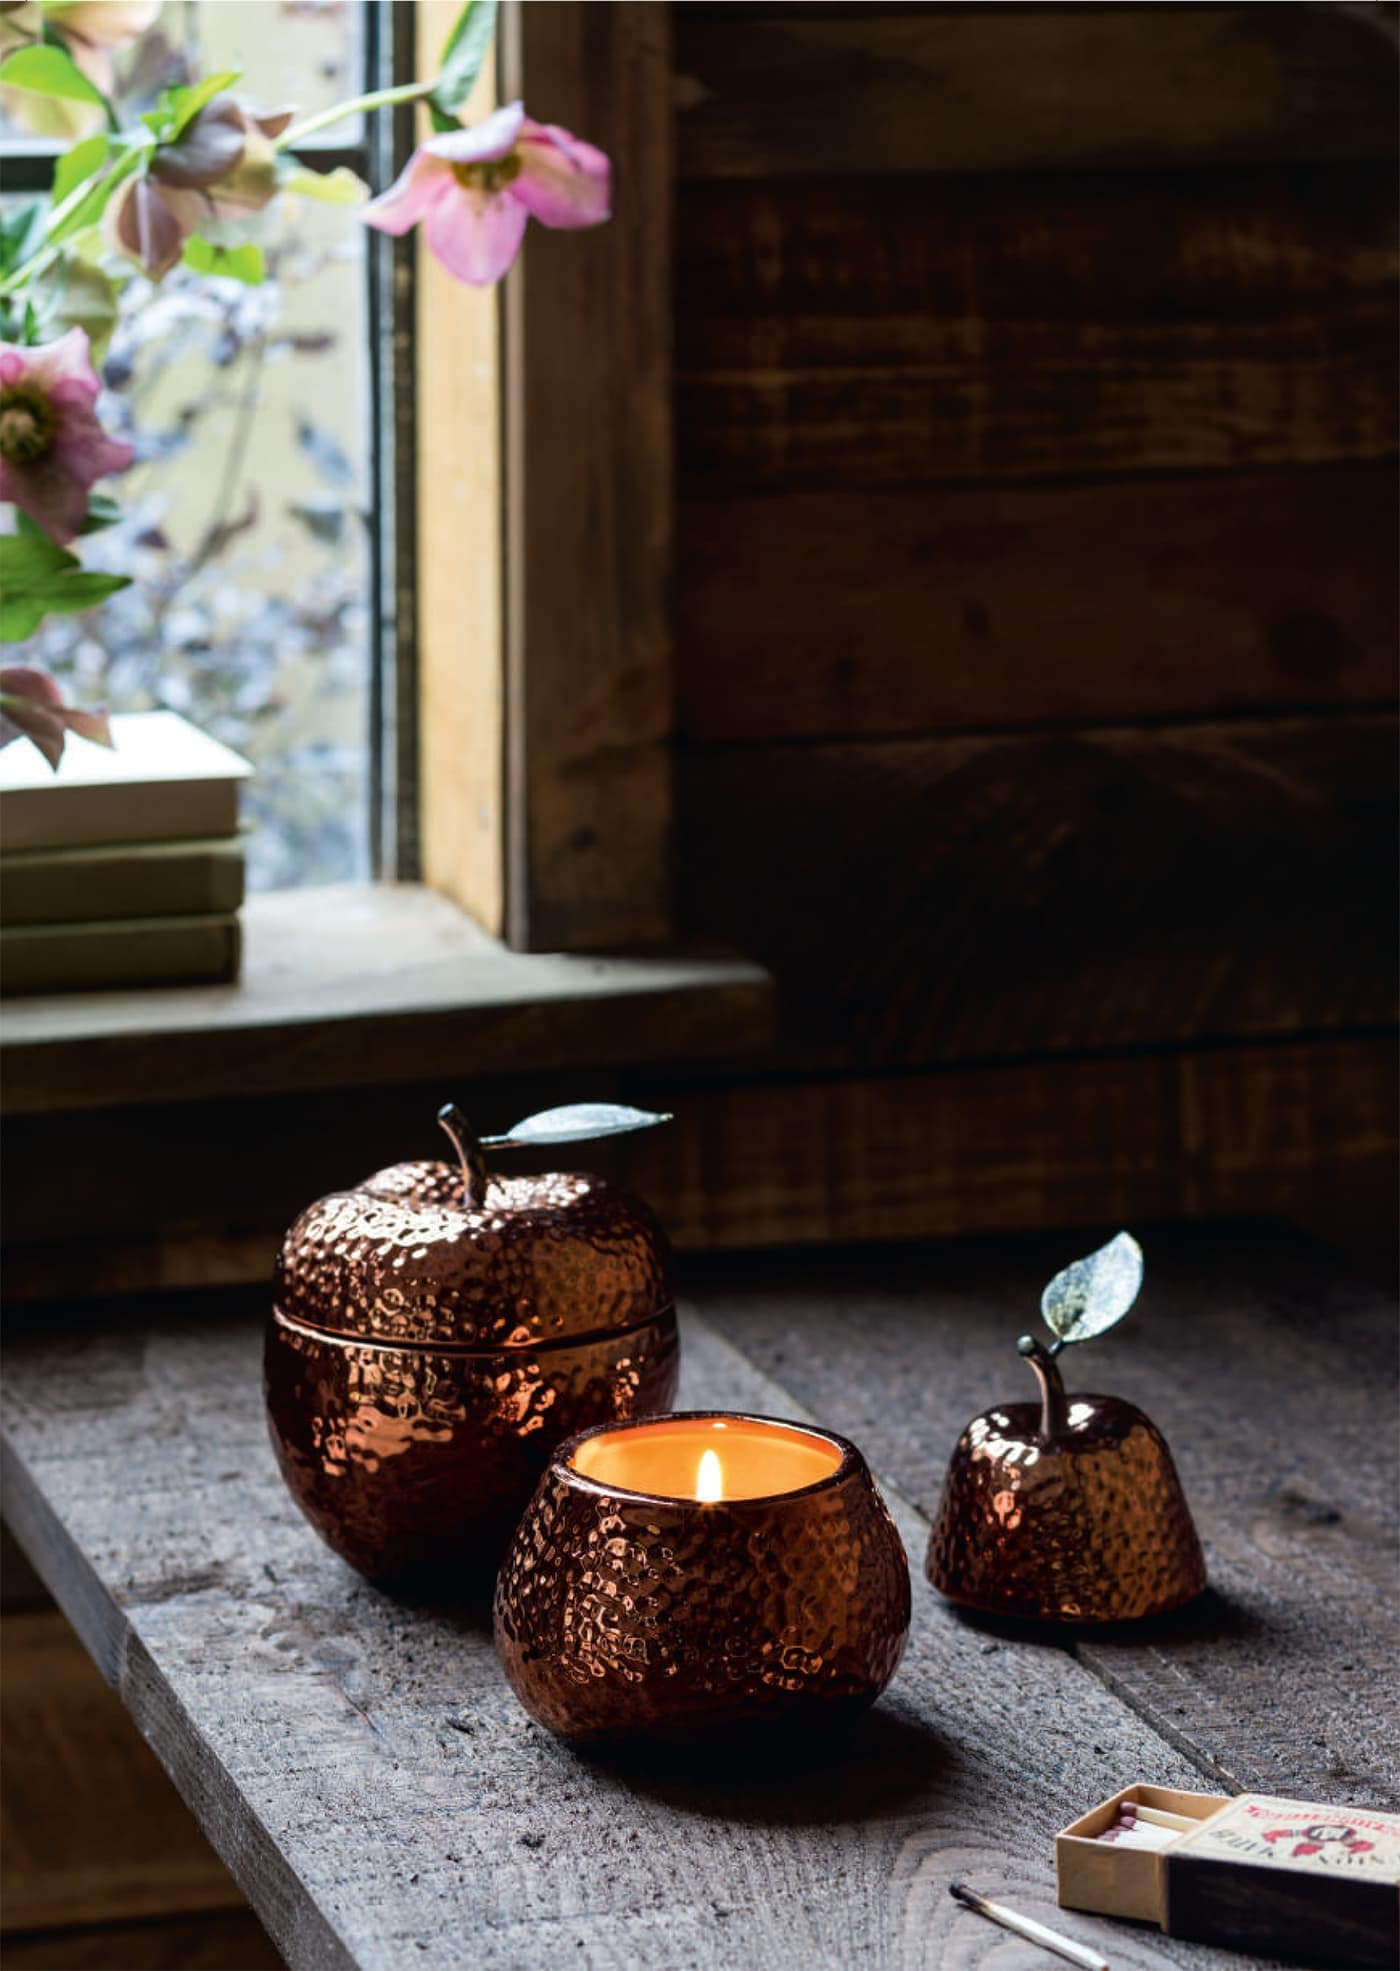 A Sneak Peak Of Autumn Winter At Tesco Home The Lovely Drawer